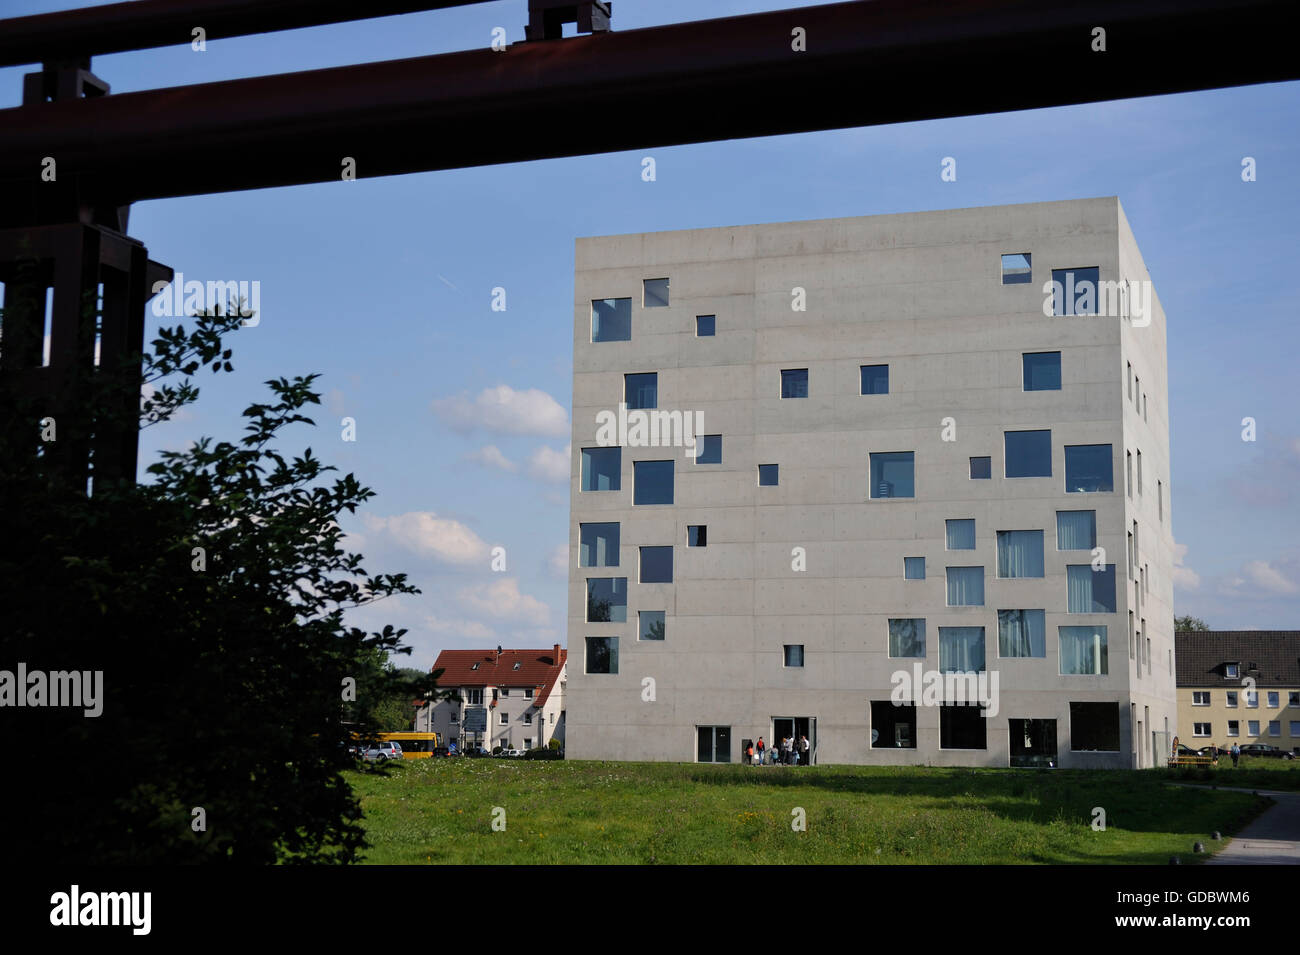 Sanaa building, Coal mine Zollverein, industrial memorial, Essen, Ruhr area, North Rhine-Westphalia, Germany / Industrial - Stock Image